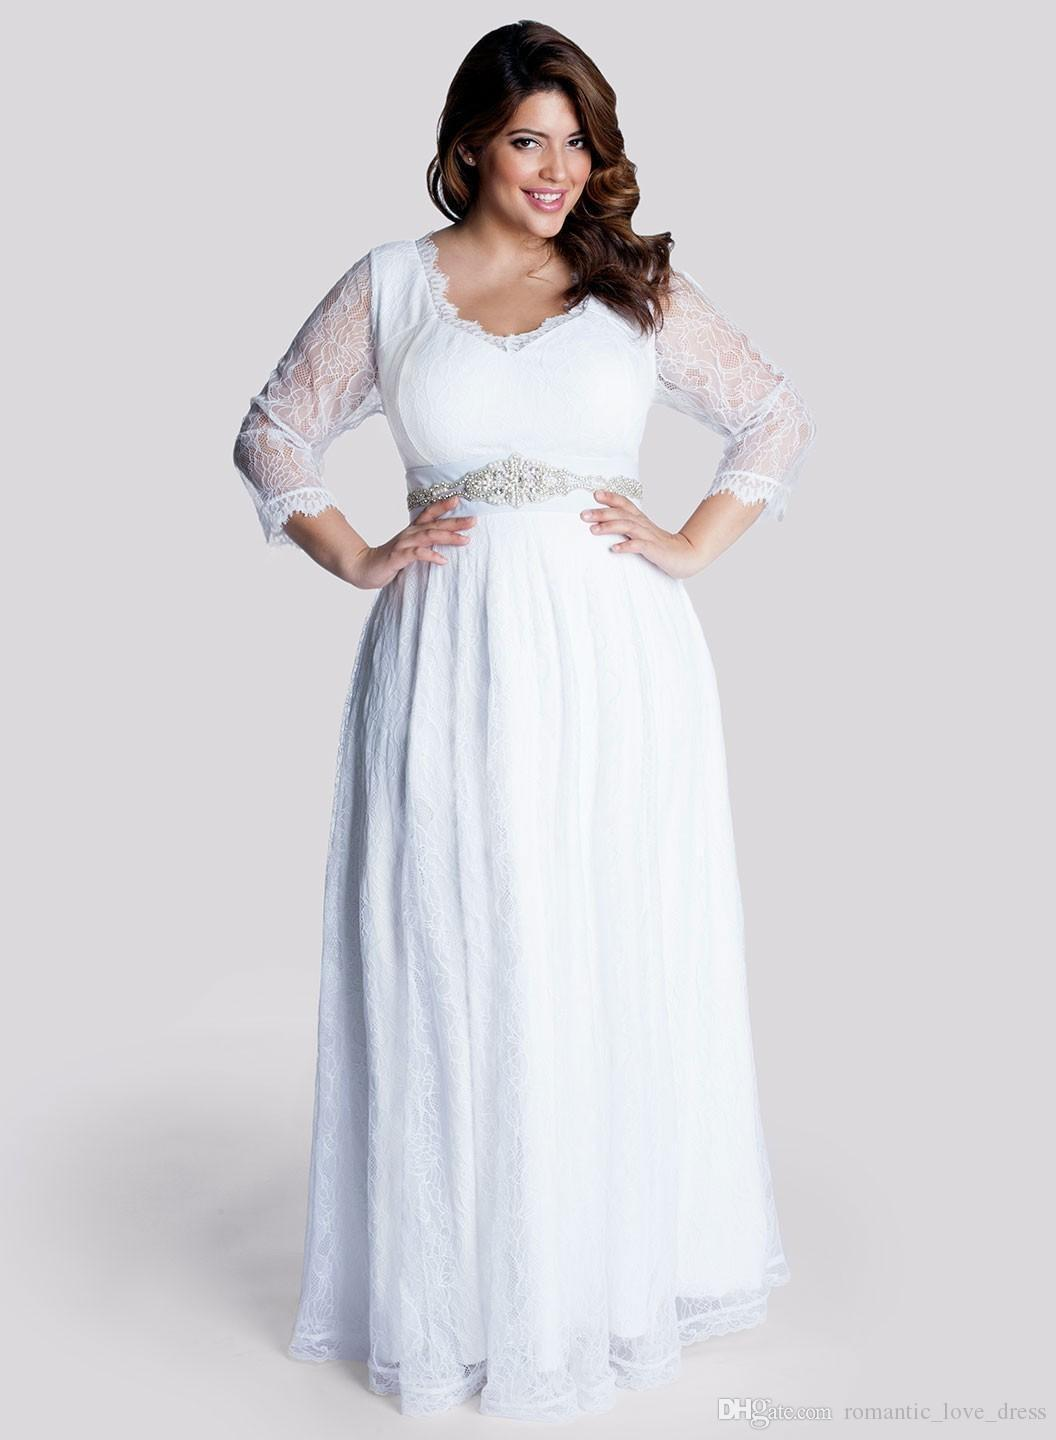 Plus Size Full Lace Chiffon Wedding Dresses 2019 New Custom Floor Length Beads Sash 3/4 Long Sleeve Empire Maternity Bridal Gowns W304